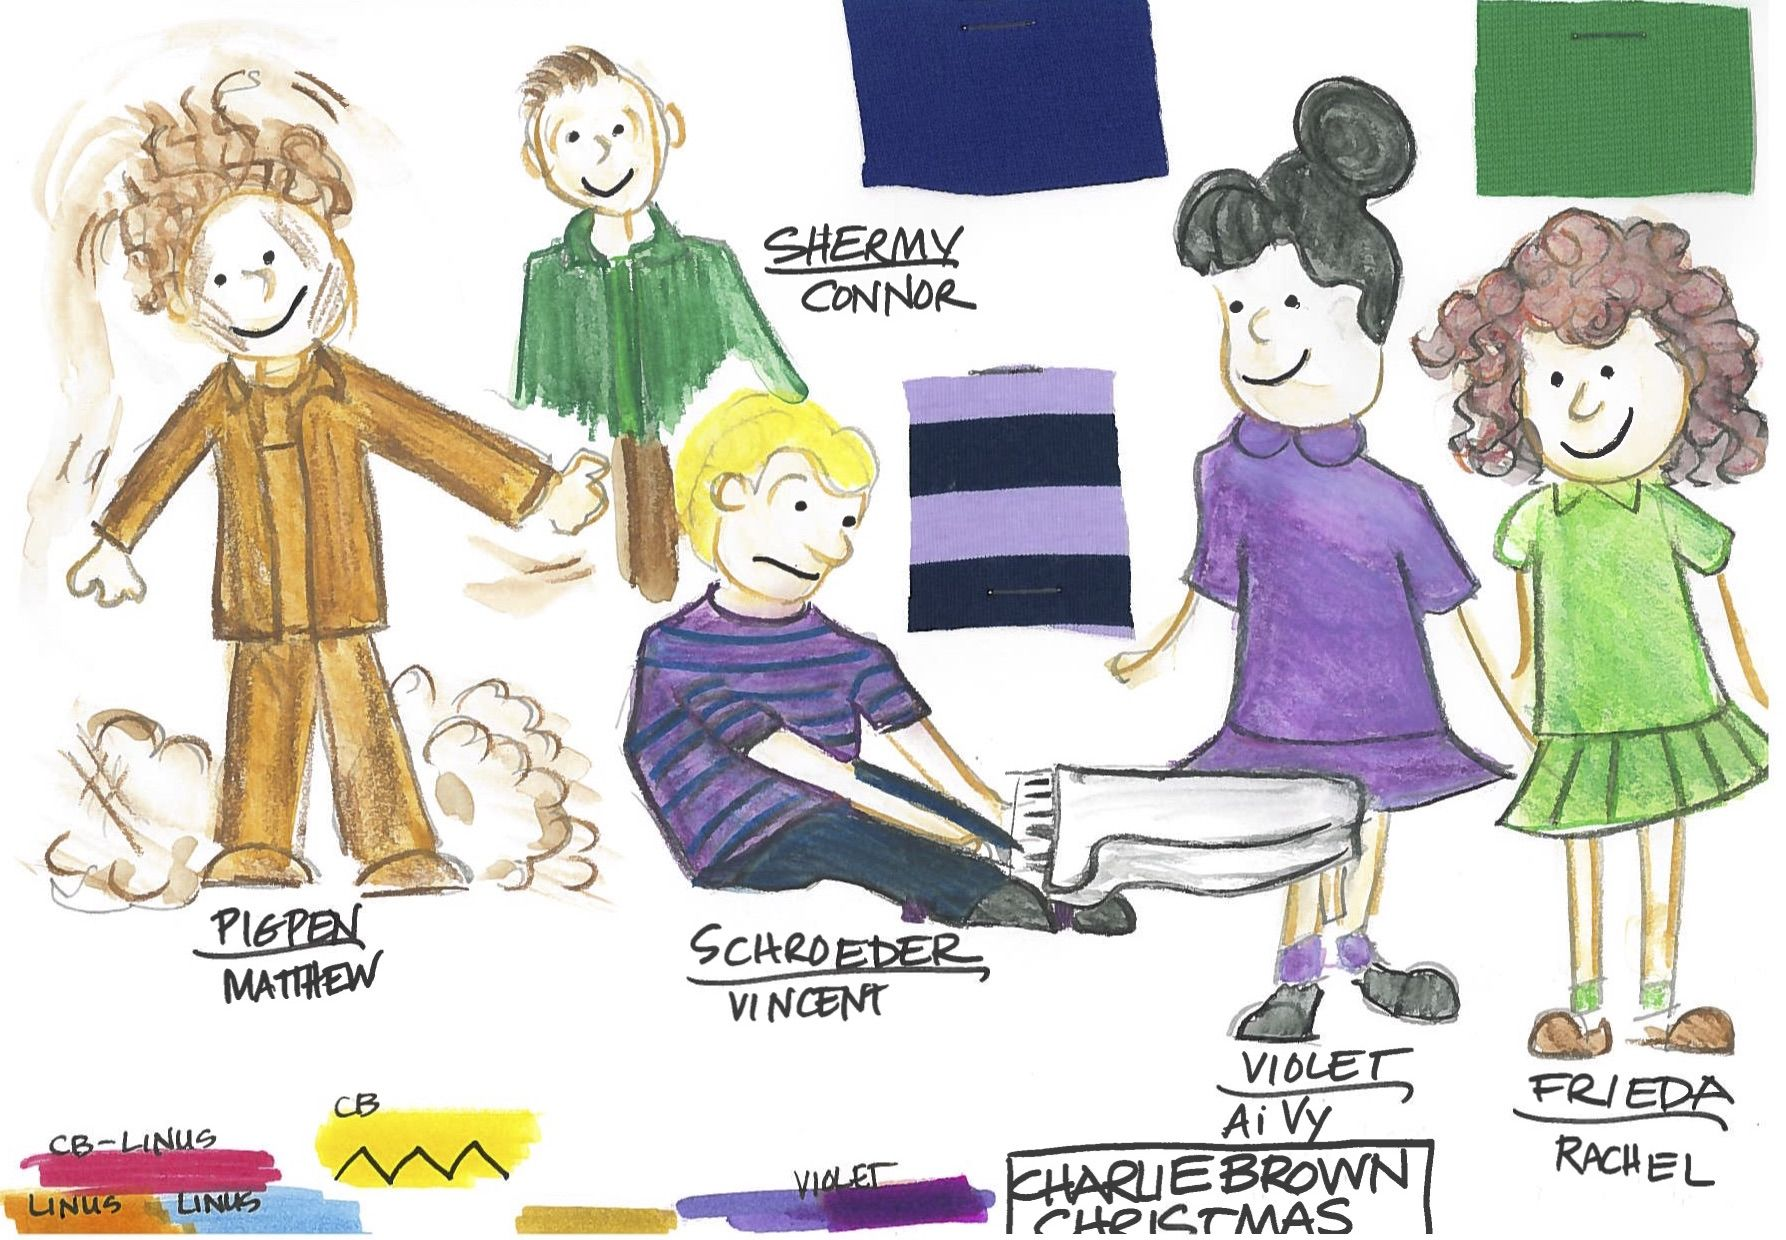 Costume design for Shermy, Pigpen, Schroeder, Violet, and Frieda by ...